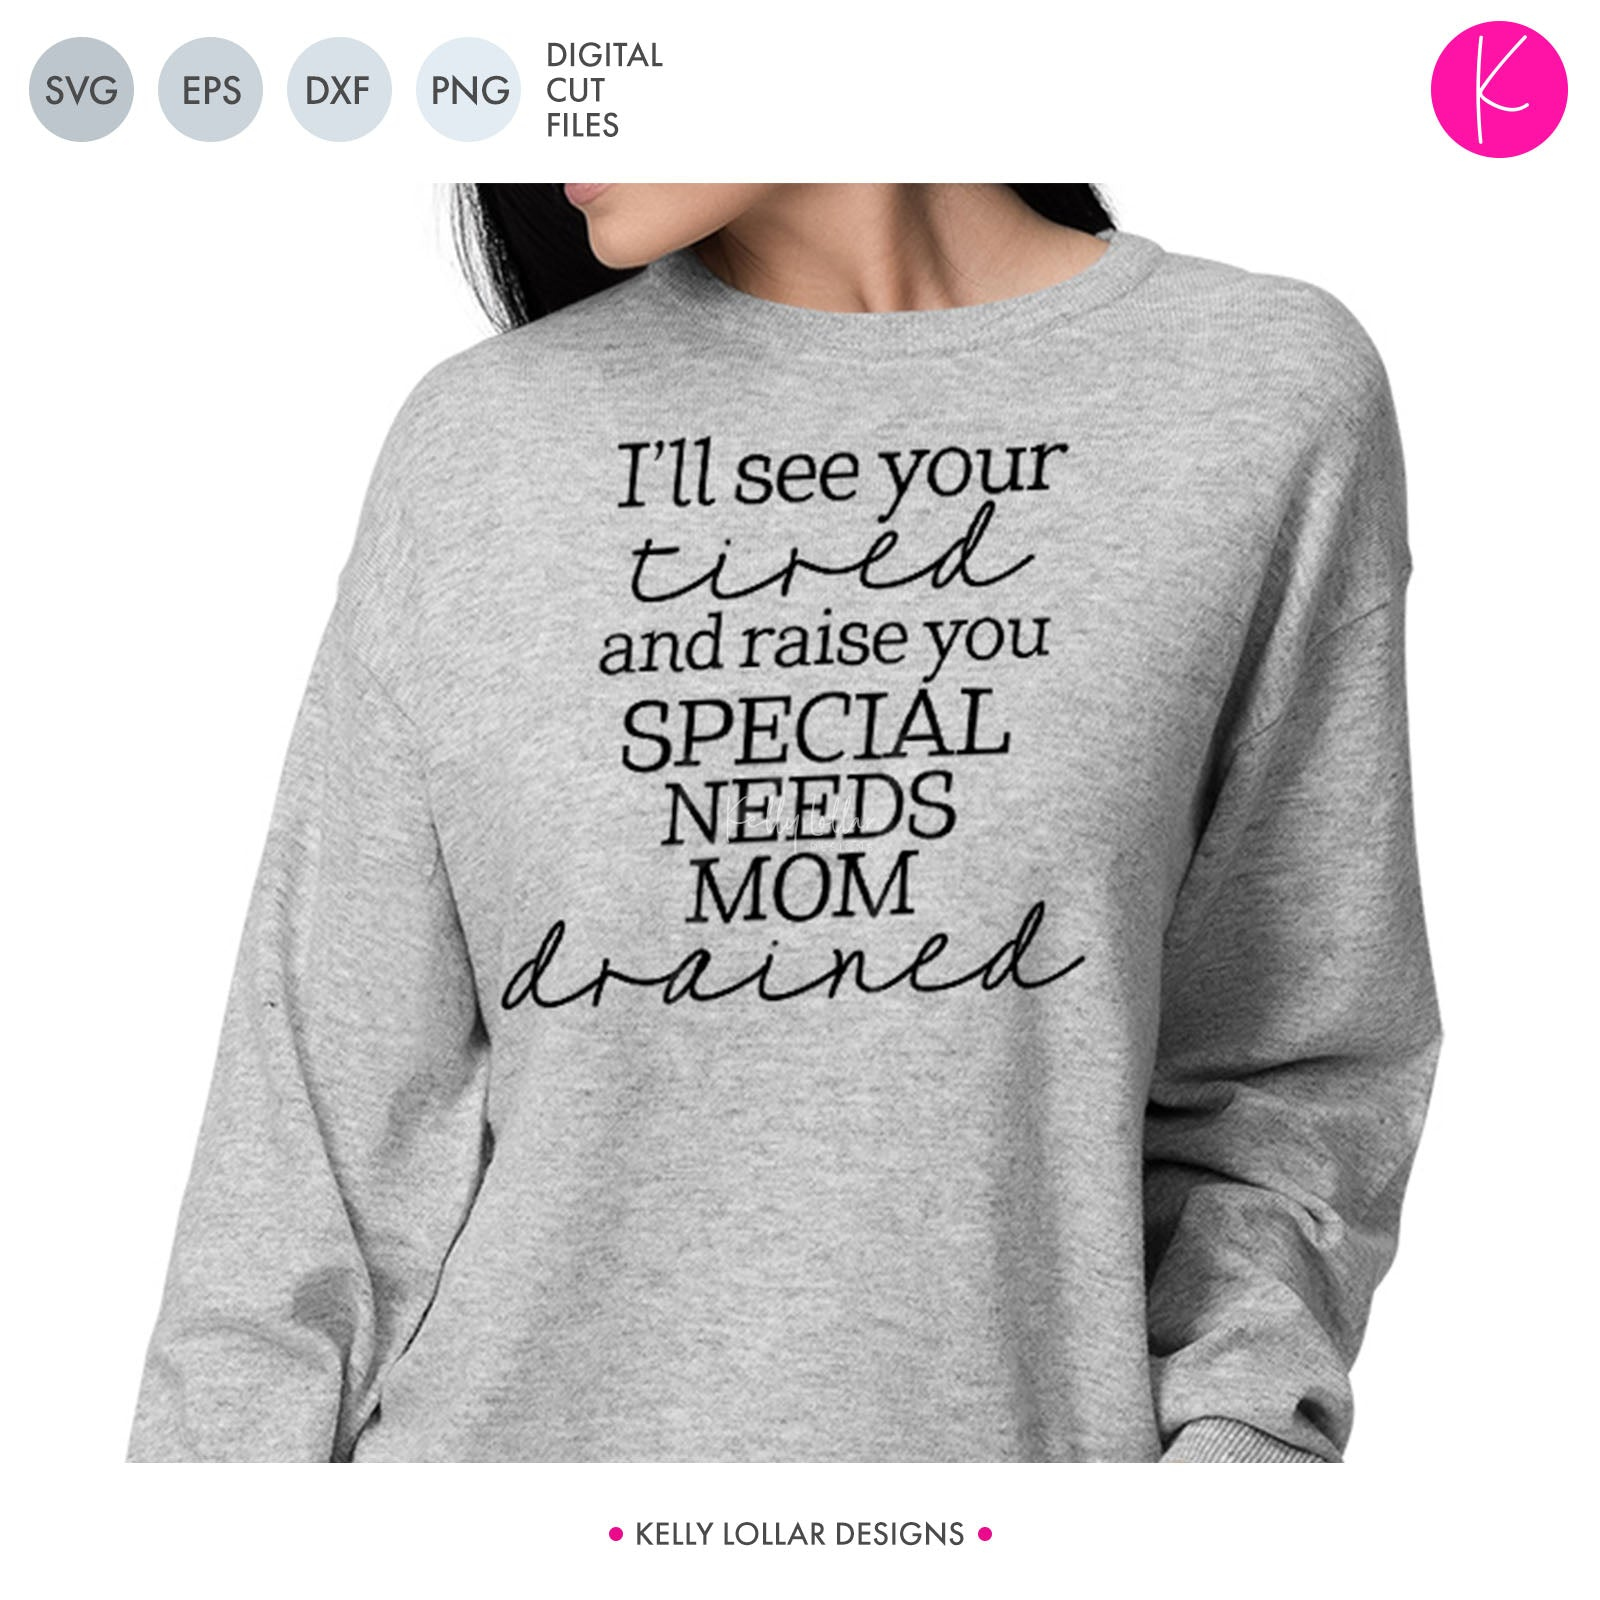 Special Needs Mom Tired | SVG DXF PNG Cut Files Neuro-diverse Mom Quote for Autism, SPD, ADHD, ODD and other awareness shirts | SVG DXF EPS PNG Cut Files Y'all, remember those days before you had kids when you thought you